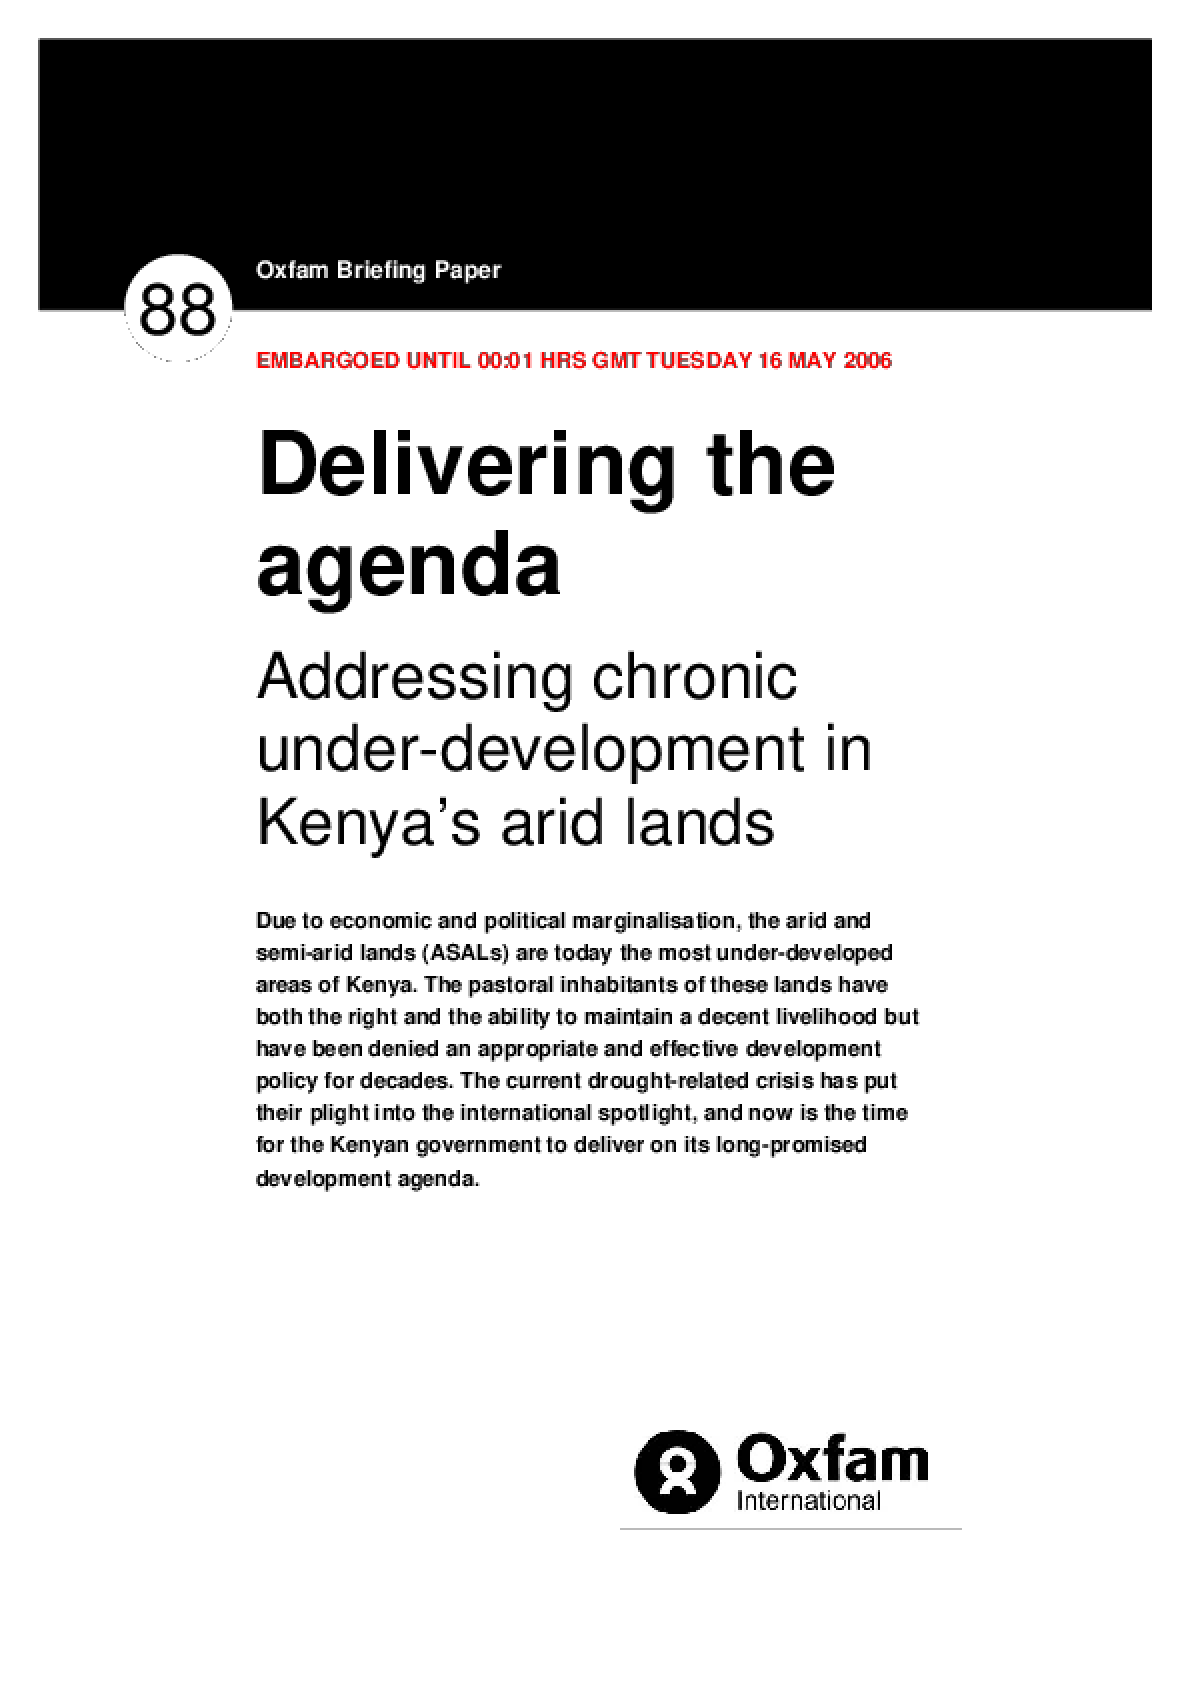 Delivering the Agenda: Addressing chronic underdevelopment in Kenya's arid lands